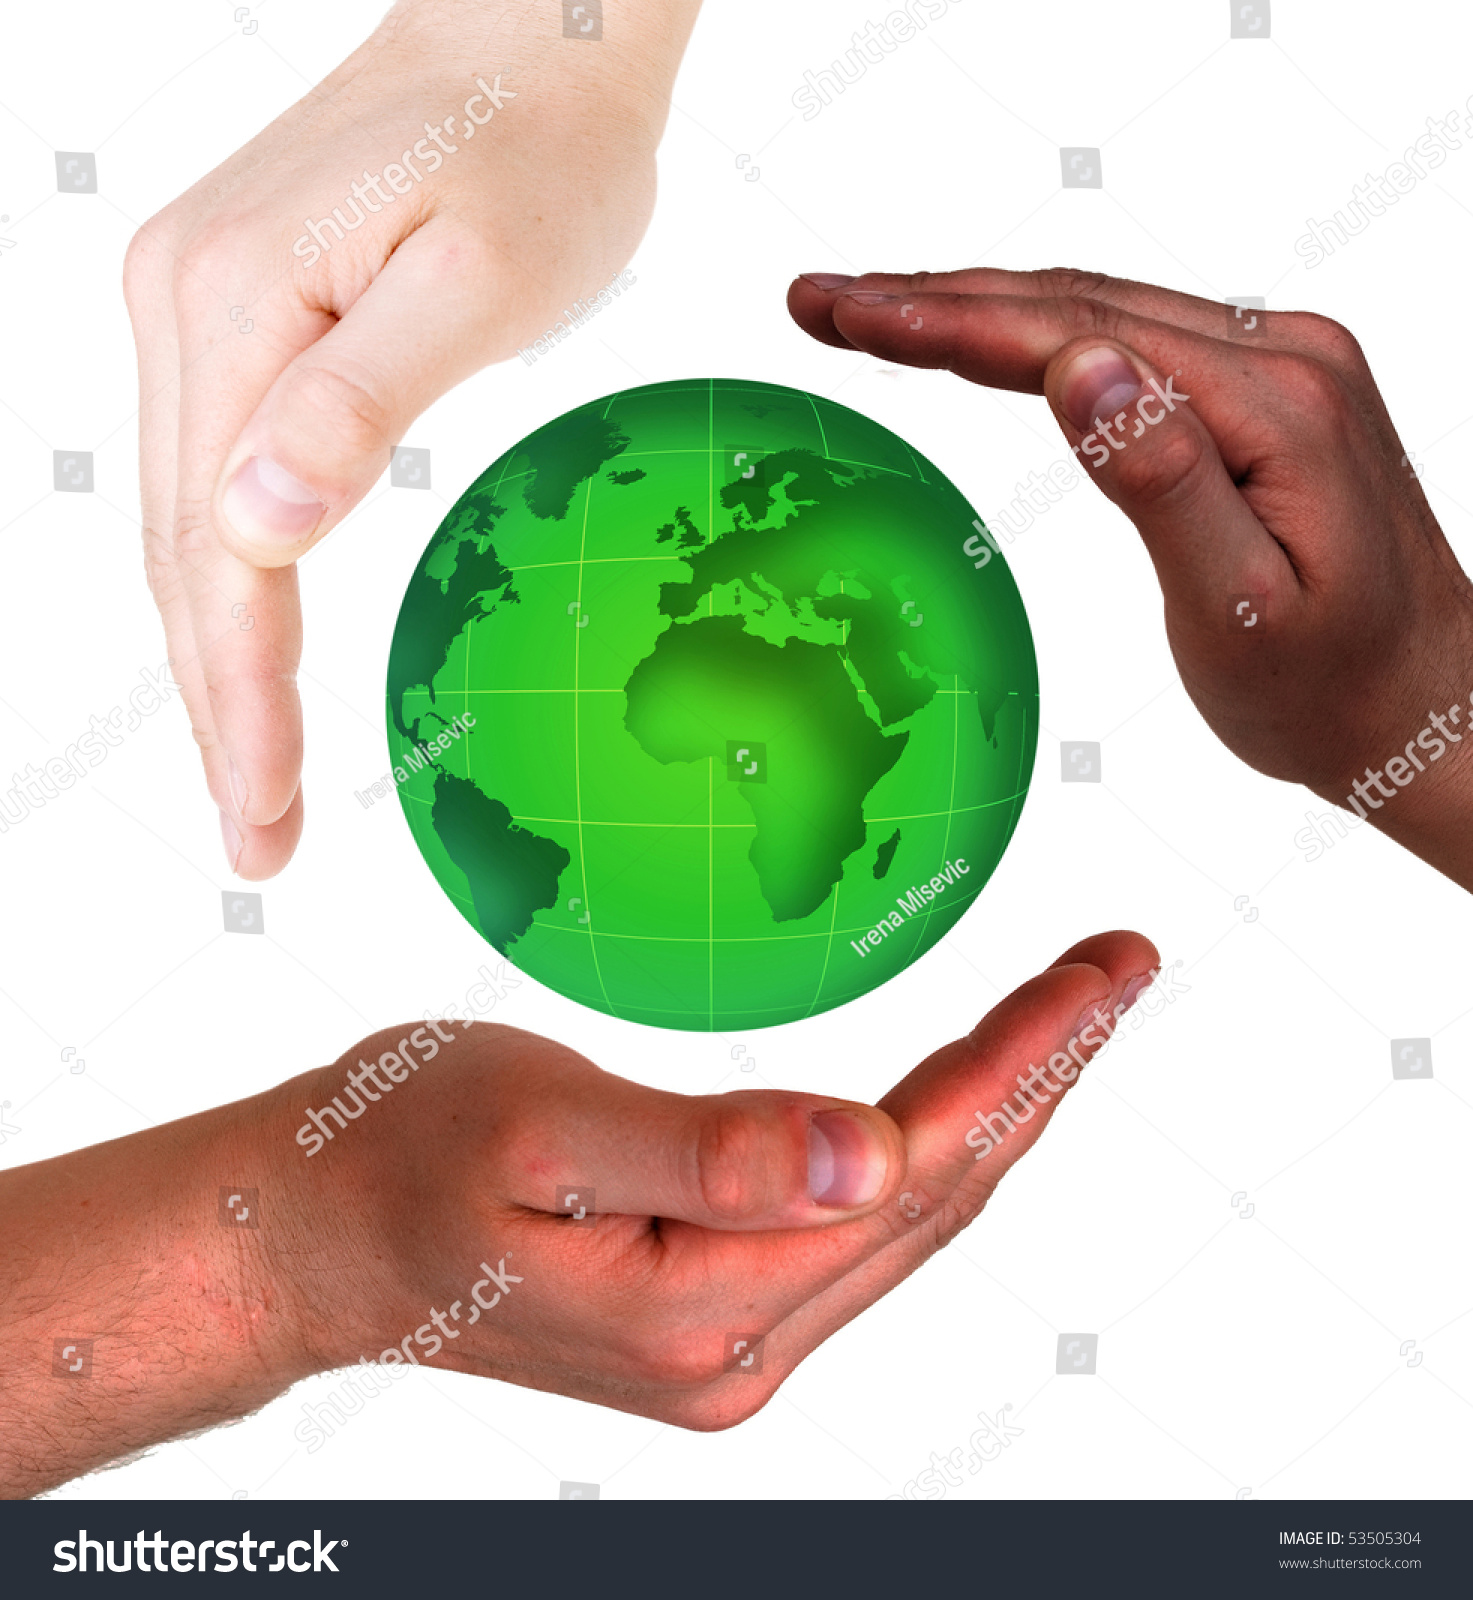 Conceptual safety symbol made hands over stock photo 53505304 conceptual safety symbol made from hands over globe biocorpaavc